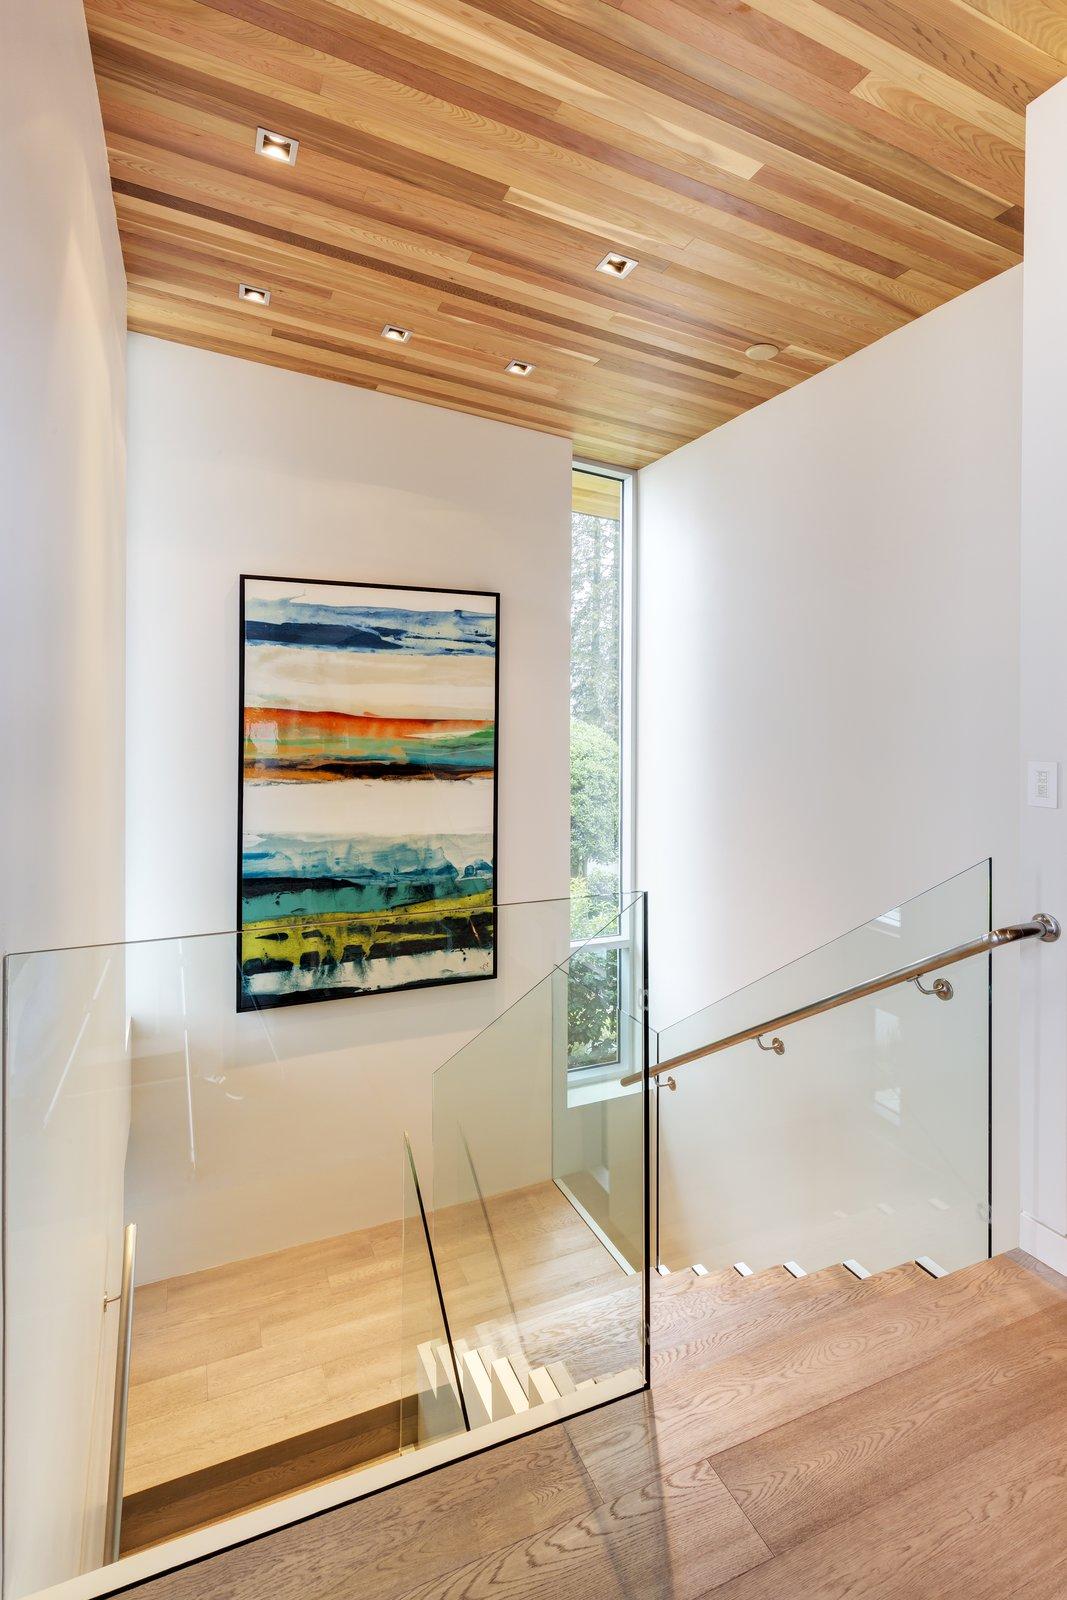 Garden Wall Residence, upper staircase  Garden Wall Residence by Garret Cord Werner